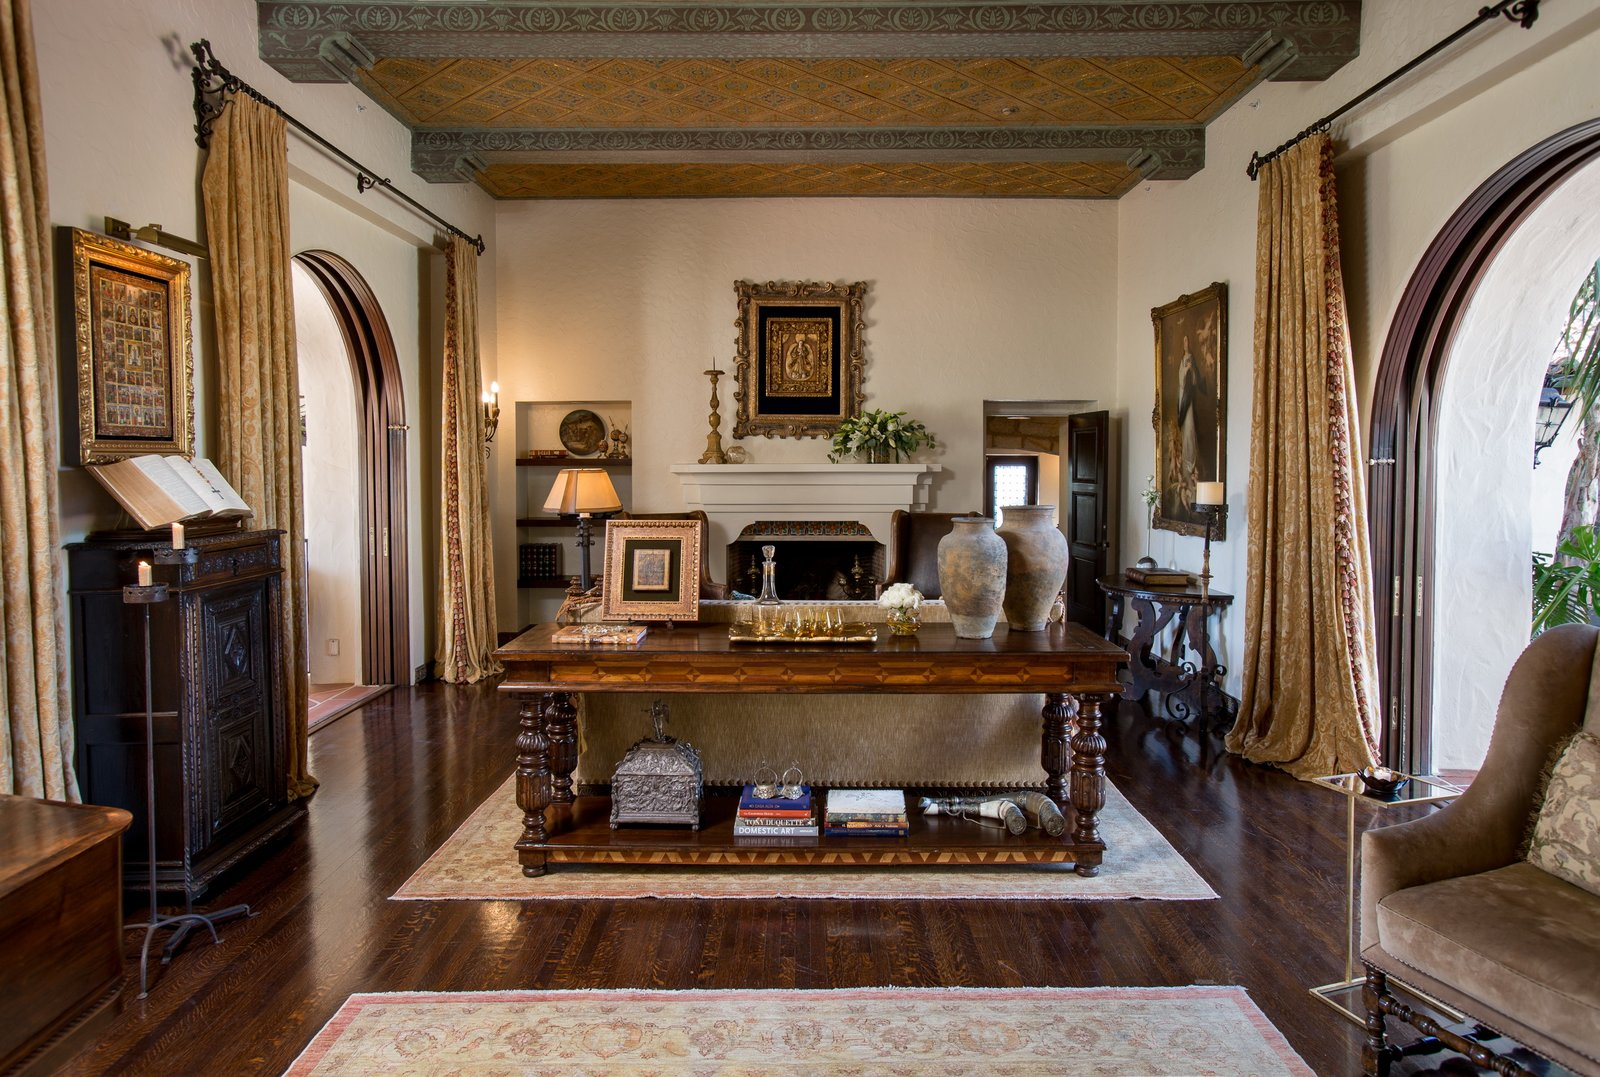 The main house showcases a great room with original gold-leaf ceiling panels and arched mahogany pocket doors, opening the entire home to the gardens and fountains.  Photo 3 of 9 in Just Listed at $4M, This Spanish Colonial Revival in Southern California Promises Resort-Like Living